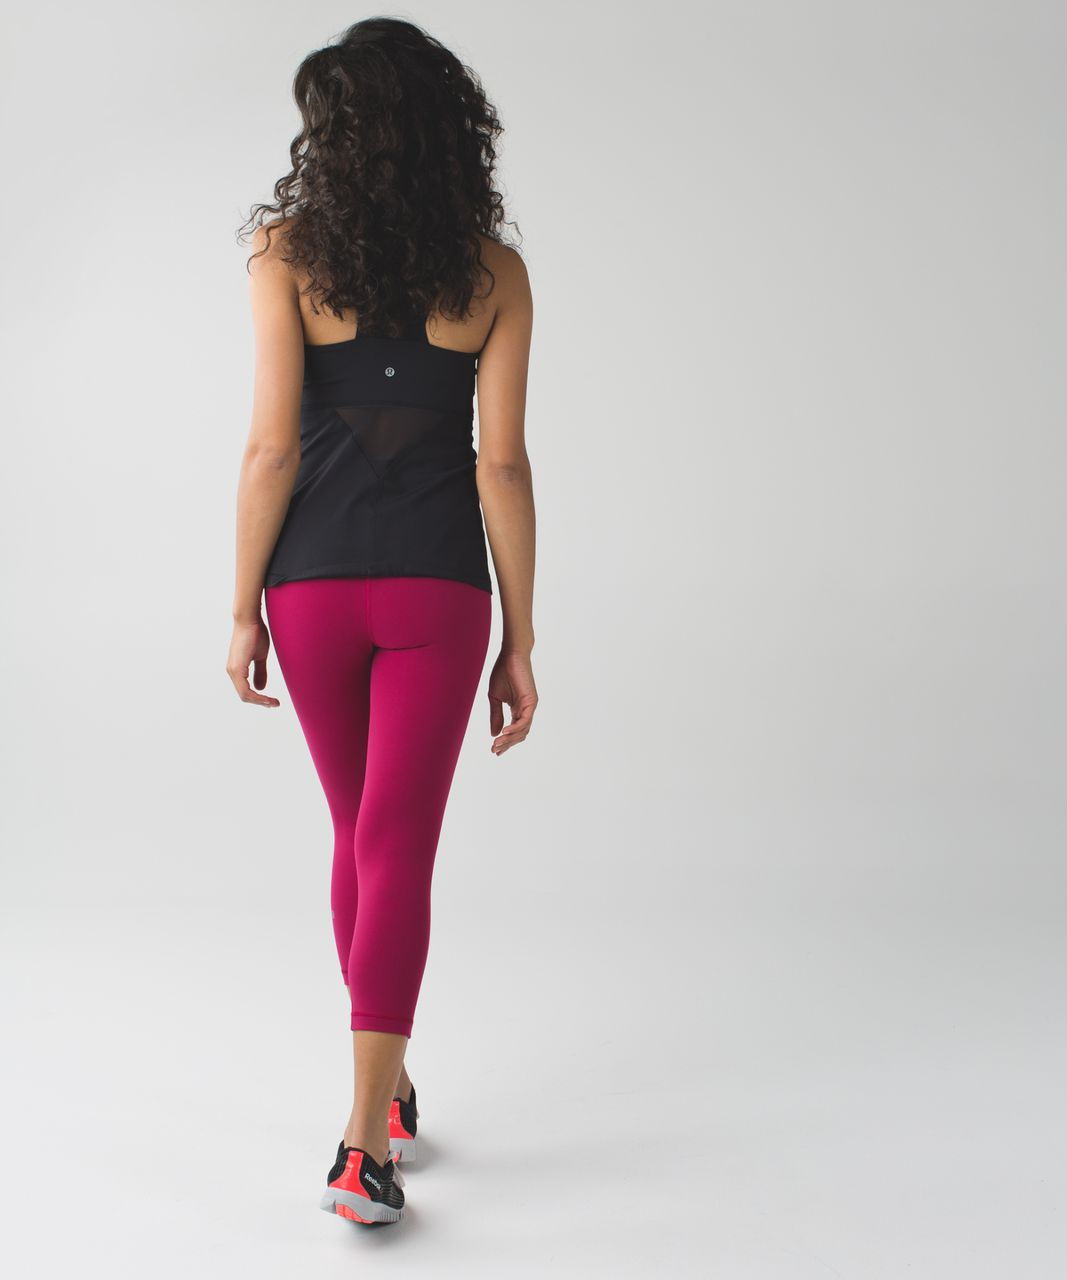 Lululemon Wunder Under Crop (Hi-Rise) *Full-On Luon - Berry Rumble / Pigment Wind Berry Rumble Multi